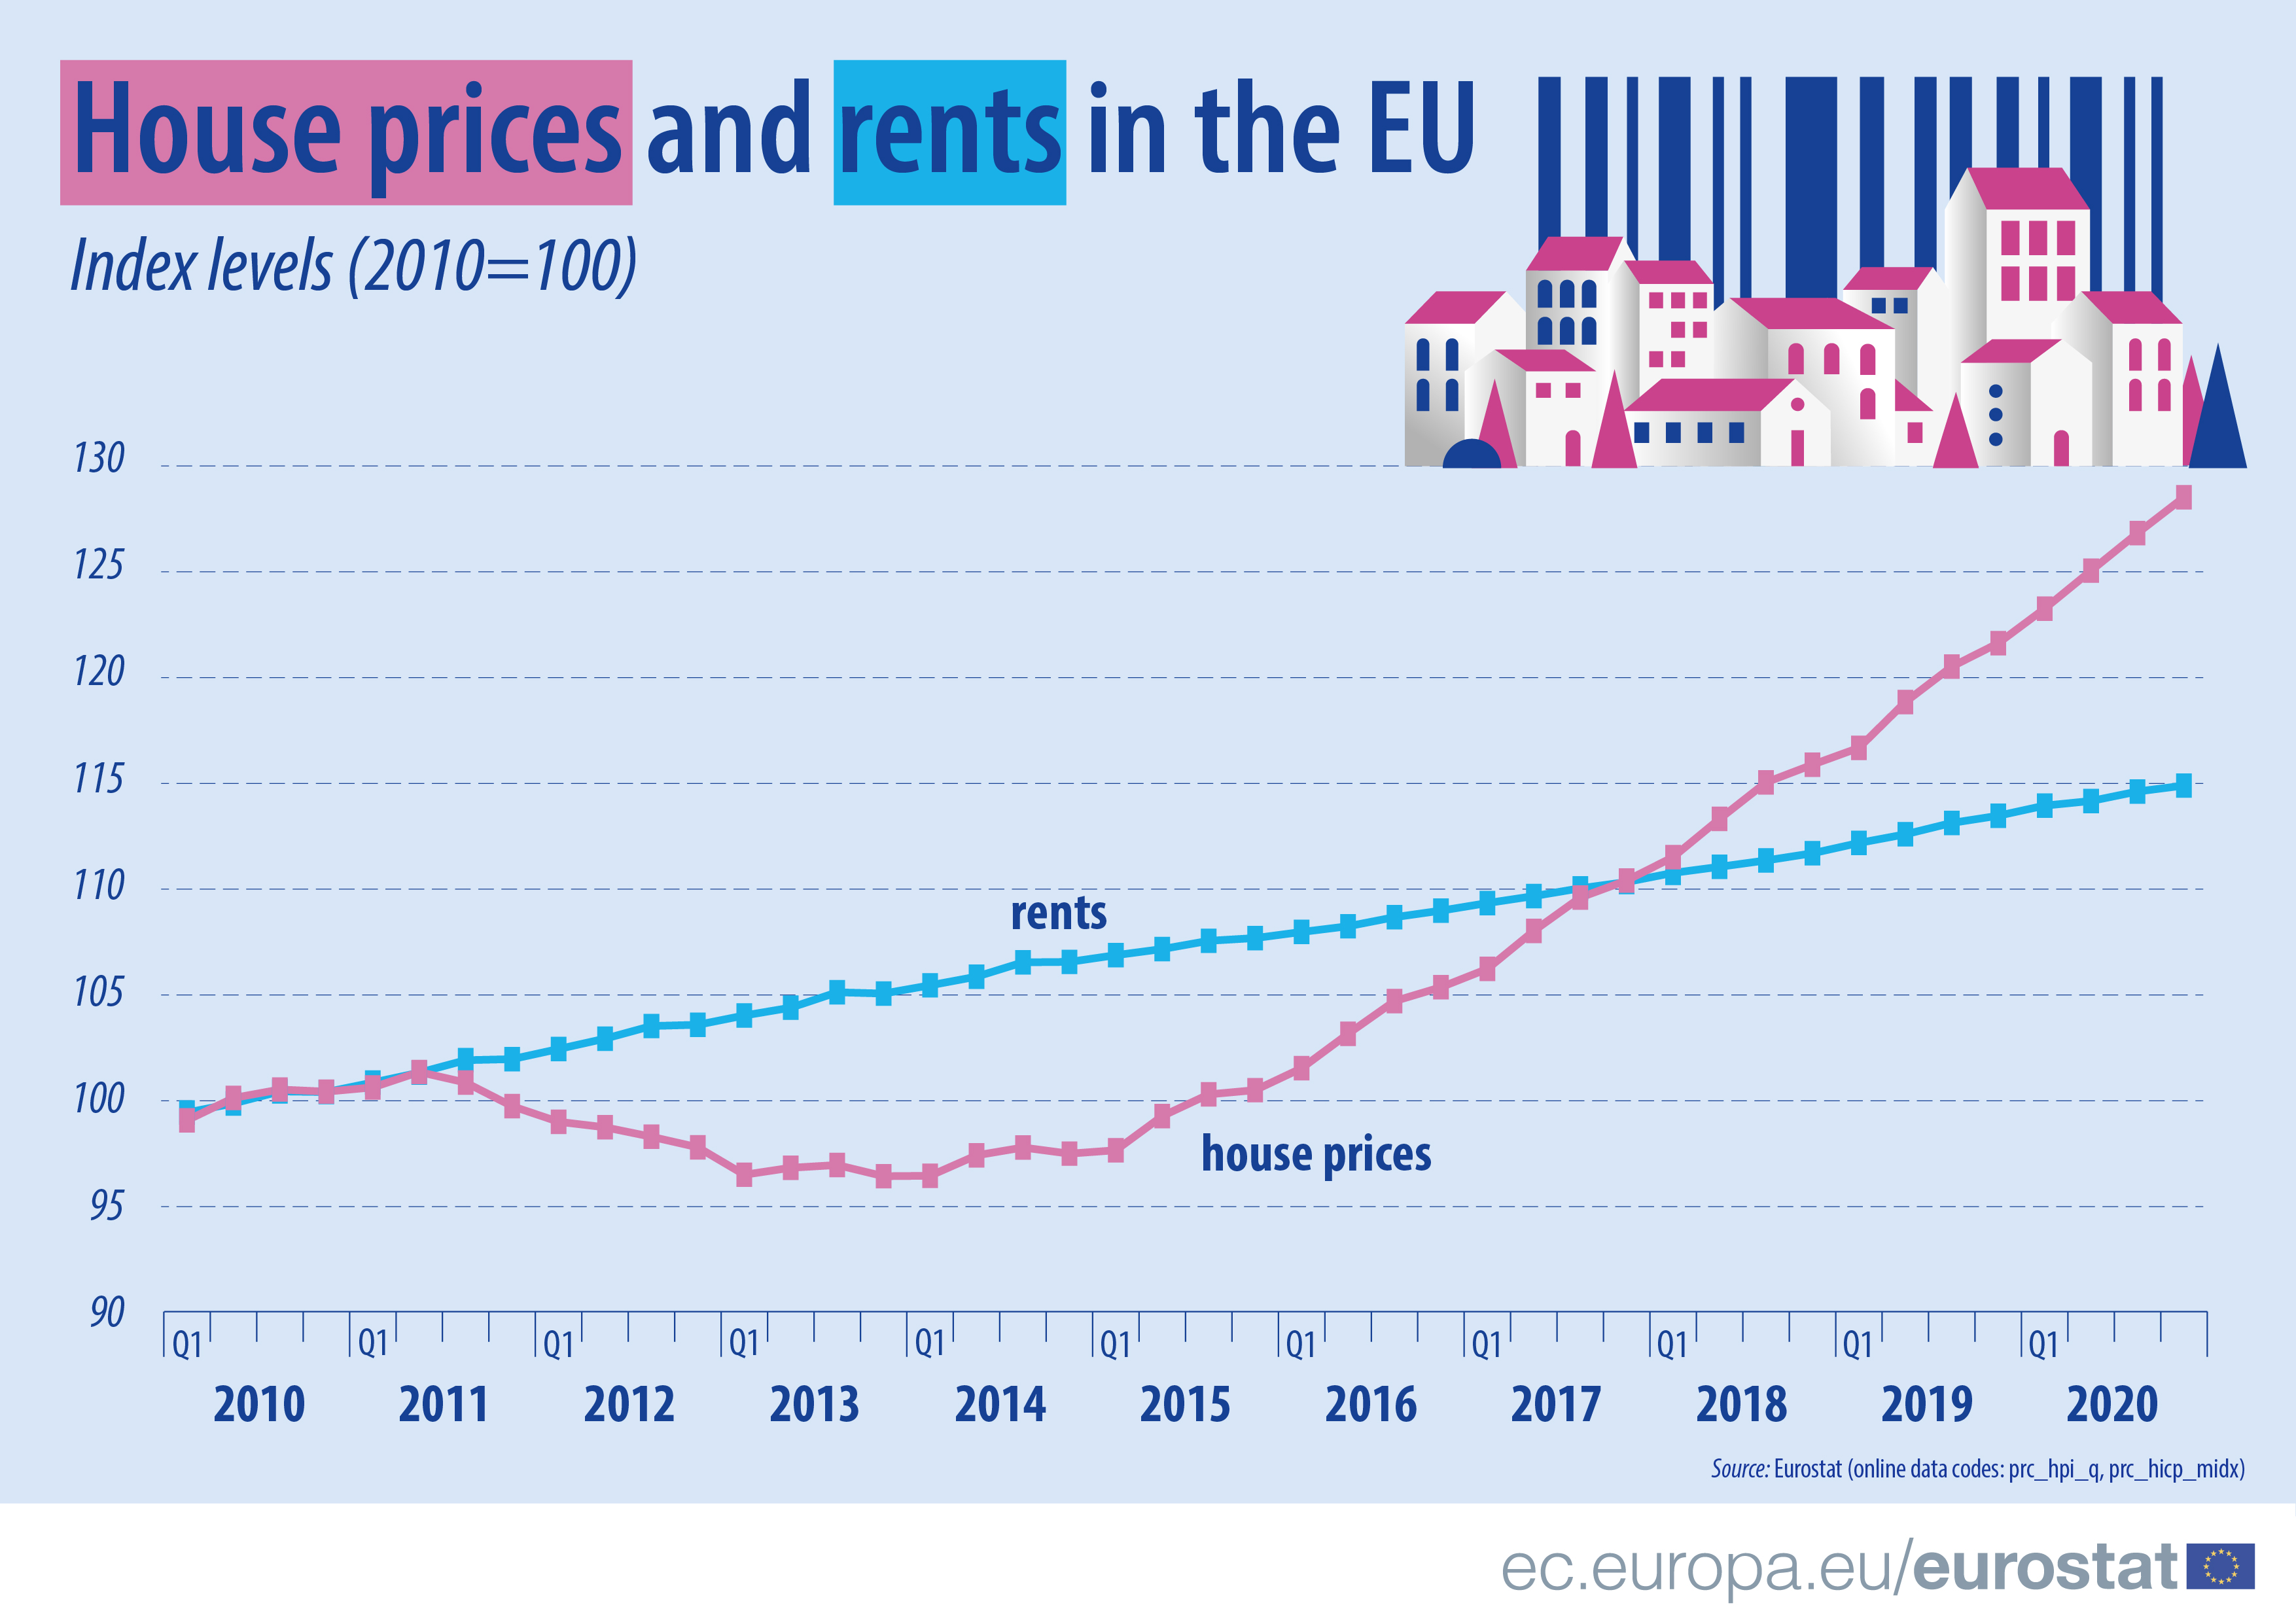 House prices and rents, index levels (2010 = 100)